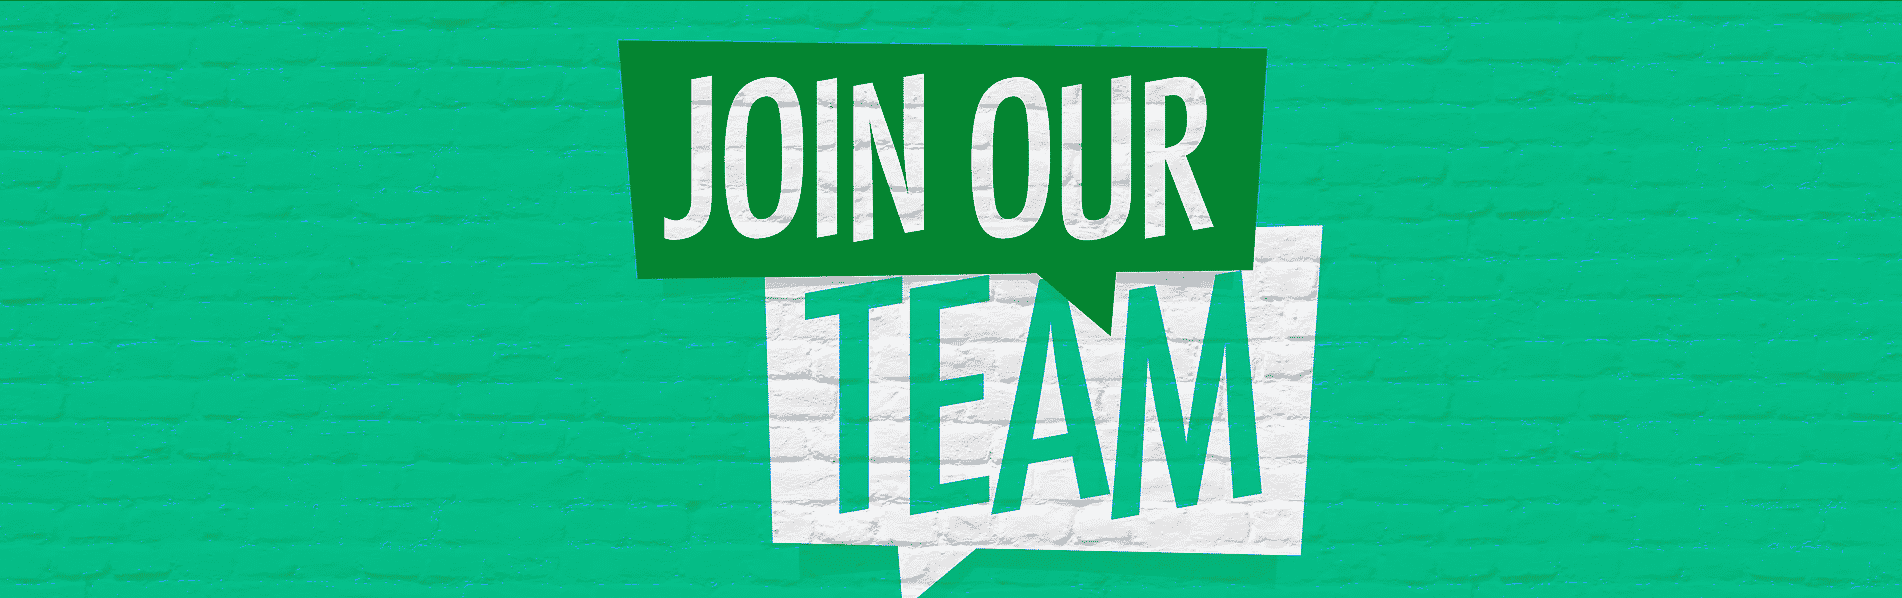 job positions - join our team